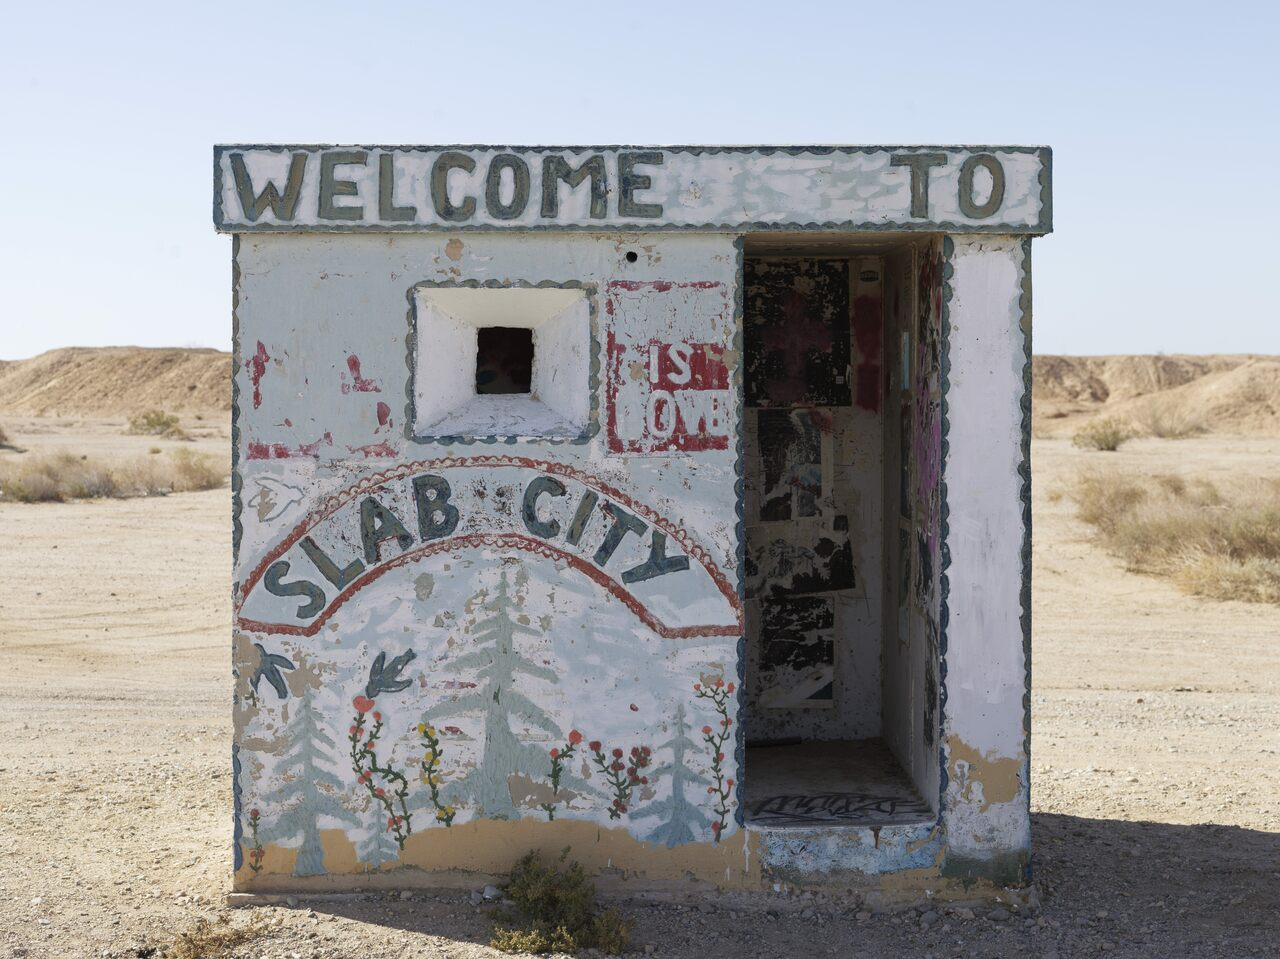 On the perimeter of Slab City.